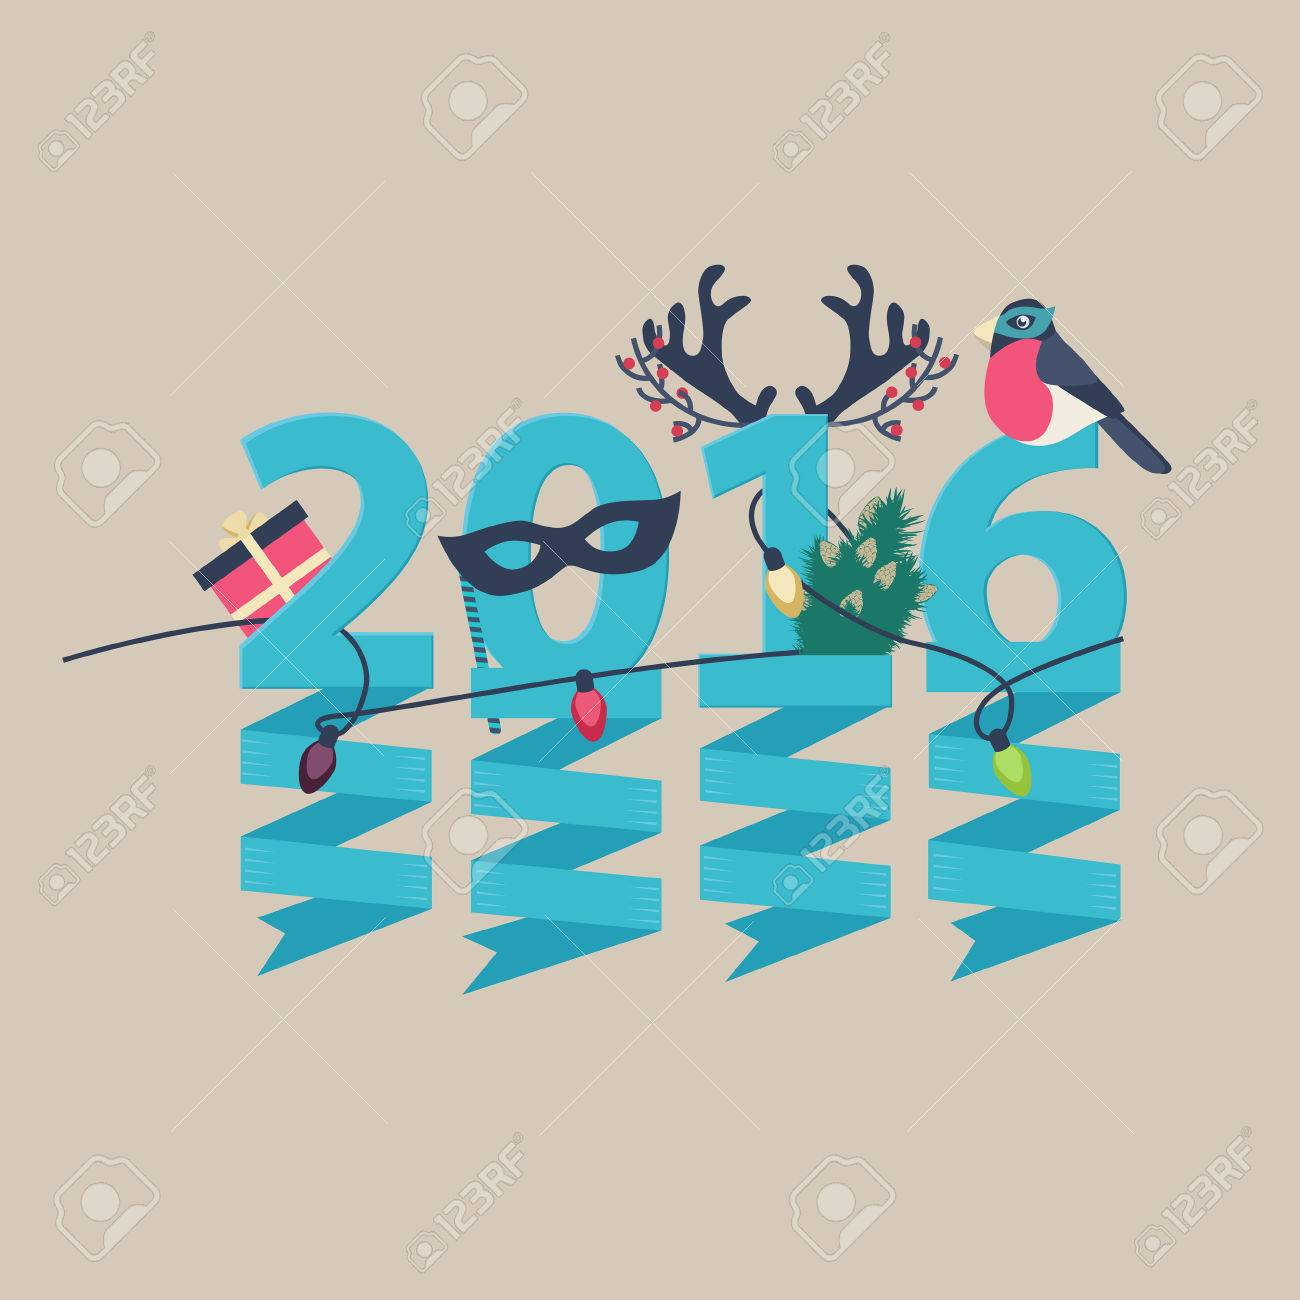 2016 New Year greeting card design with party streamers hanging from blue numerals decorated with Christmas lights, a gift, robin, tree and antlers Stock Vector - 48104774